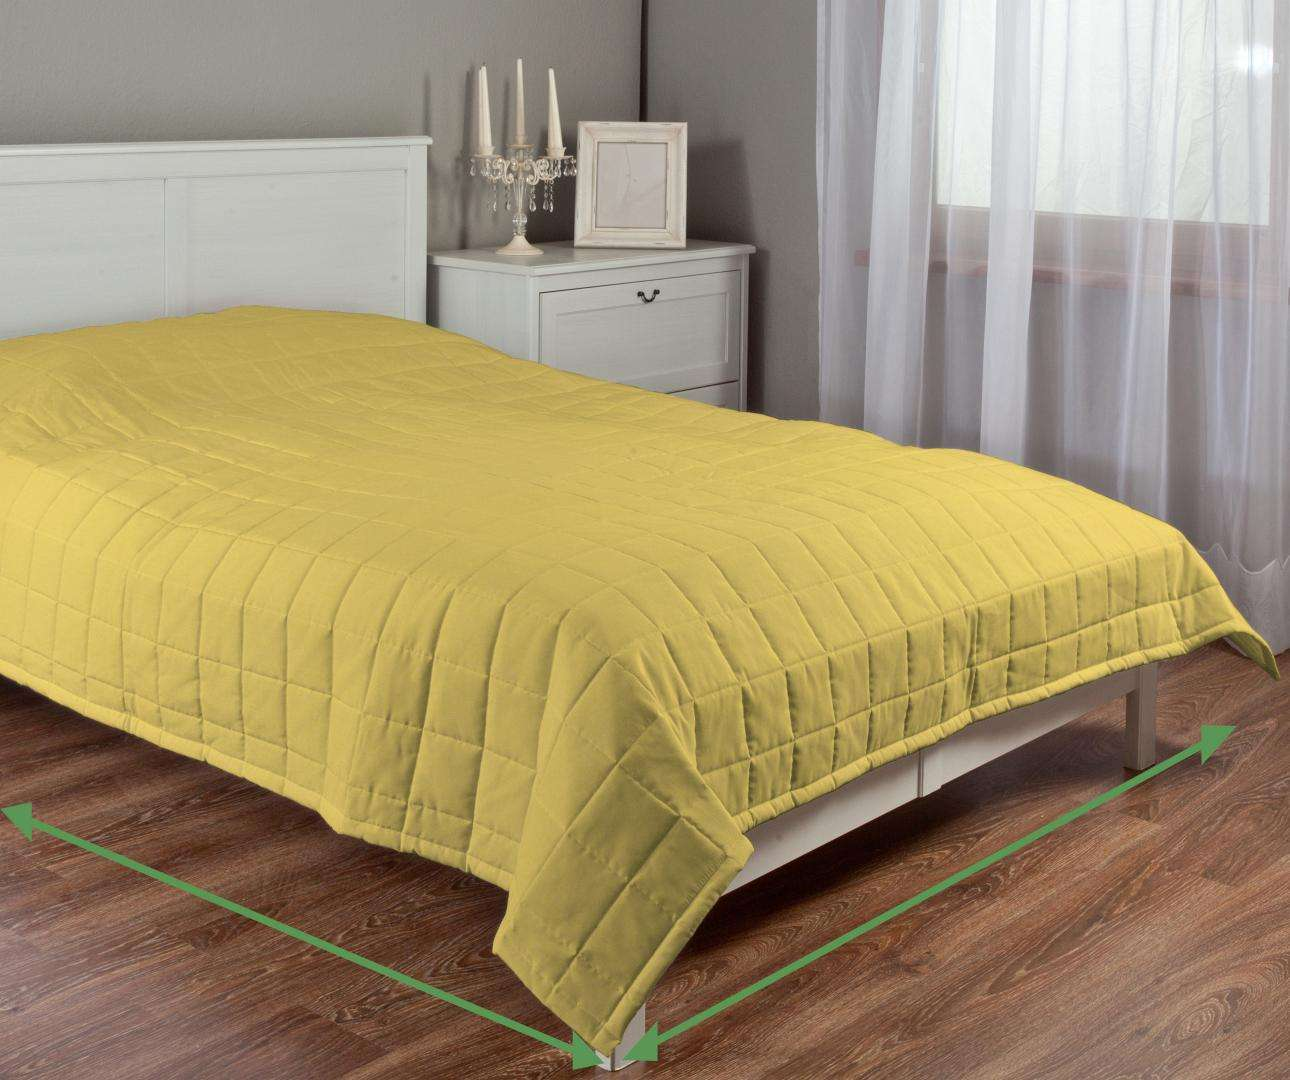 Quilted throw (check quilt pattern) in collection Milano, fabric: 150-34